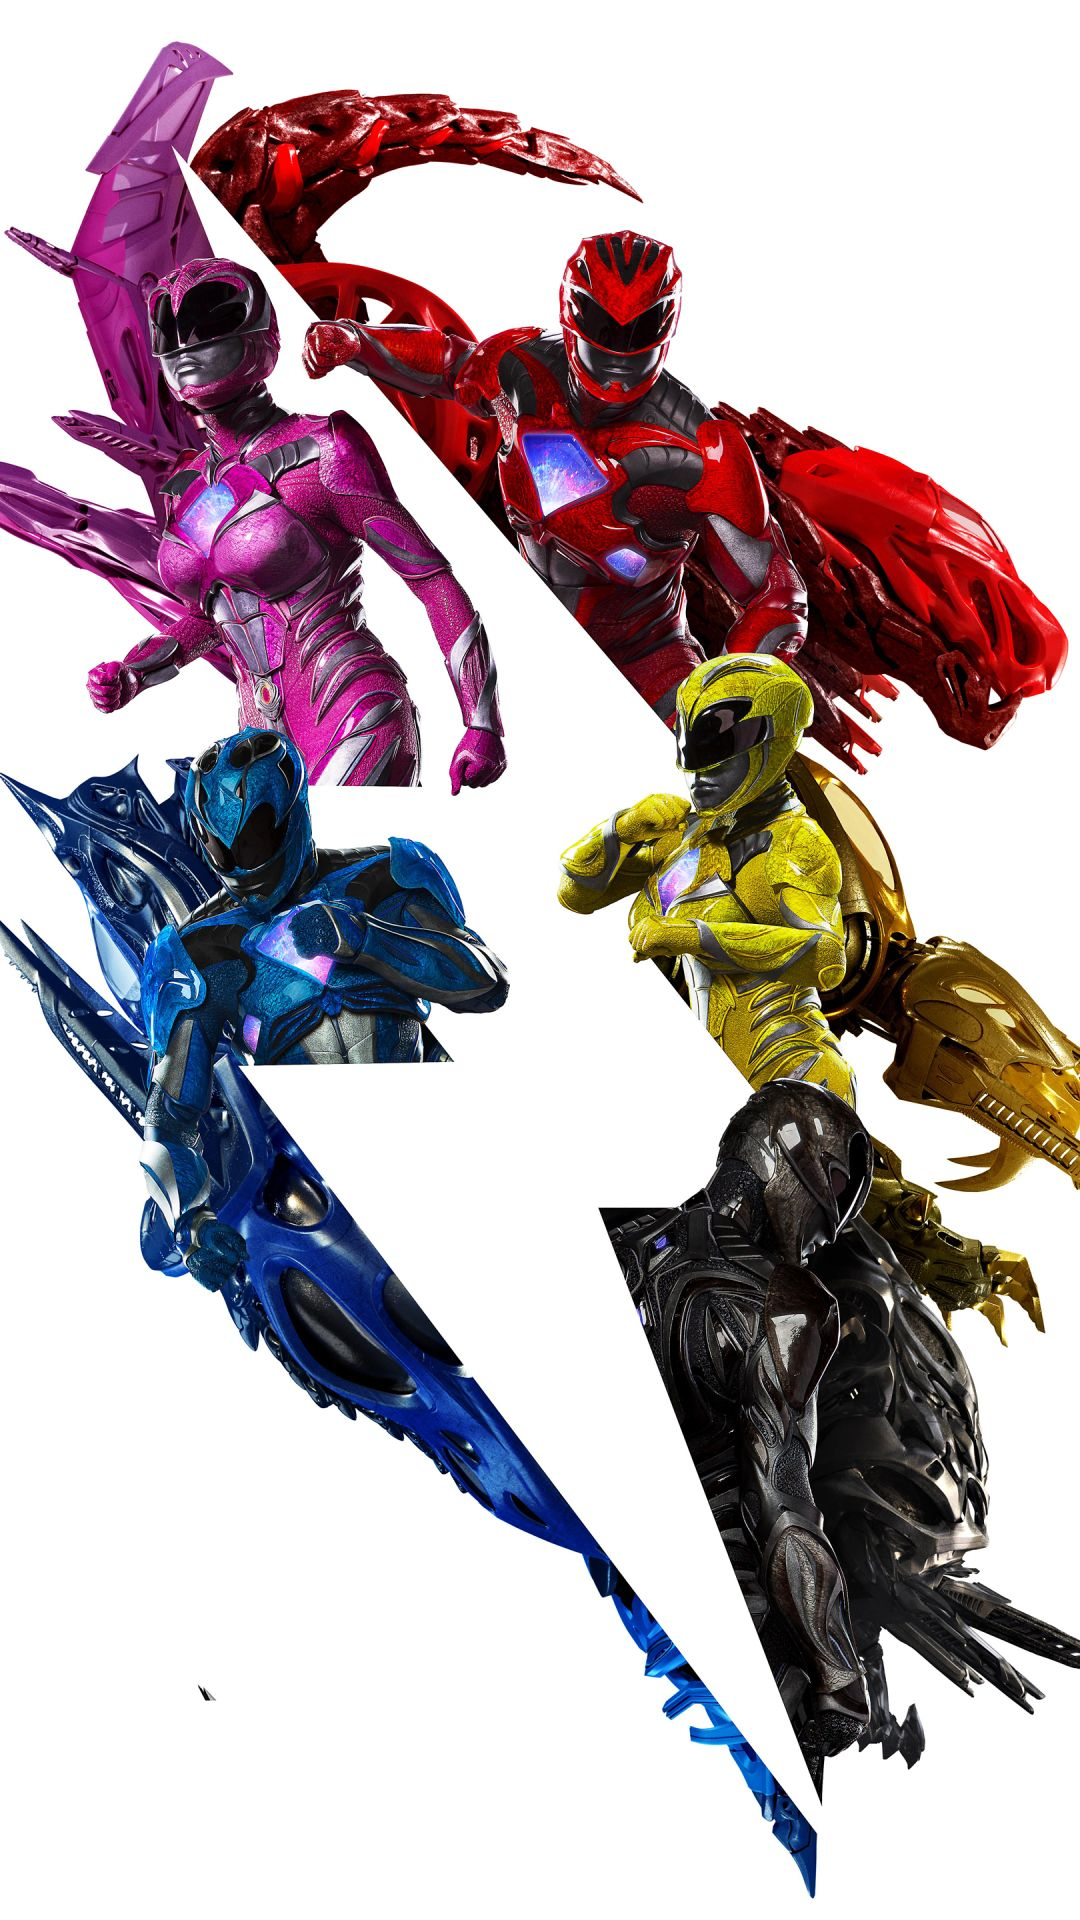 Free Download Power Rangers Jungle Fury Wallpaper 64 Images